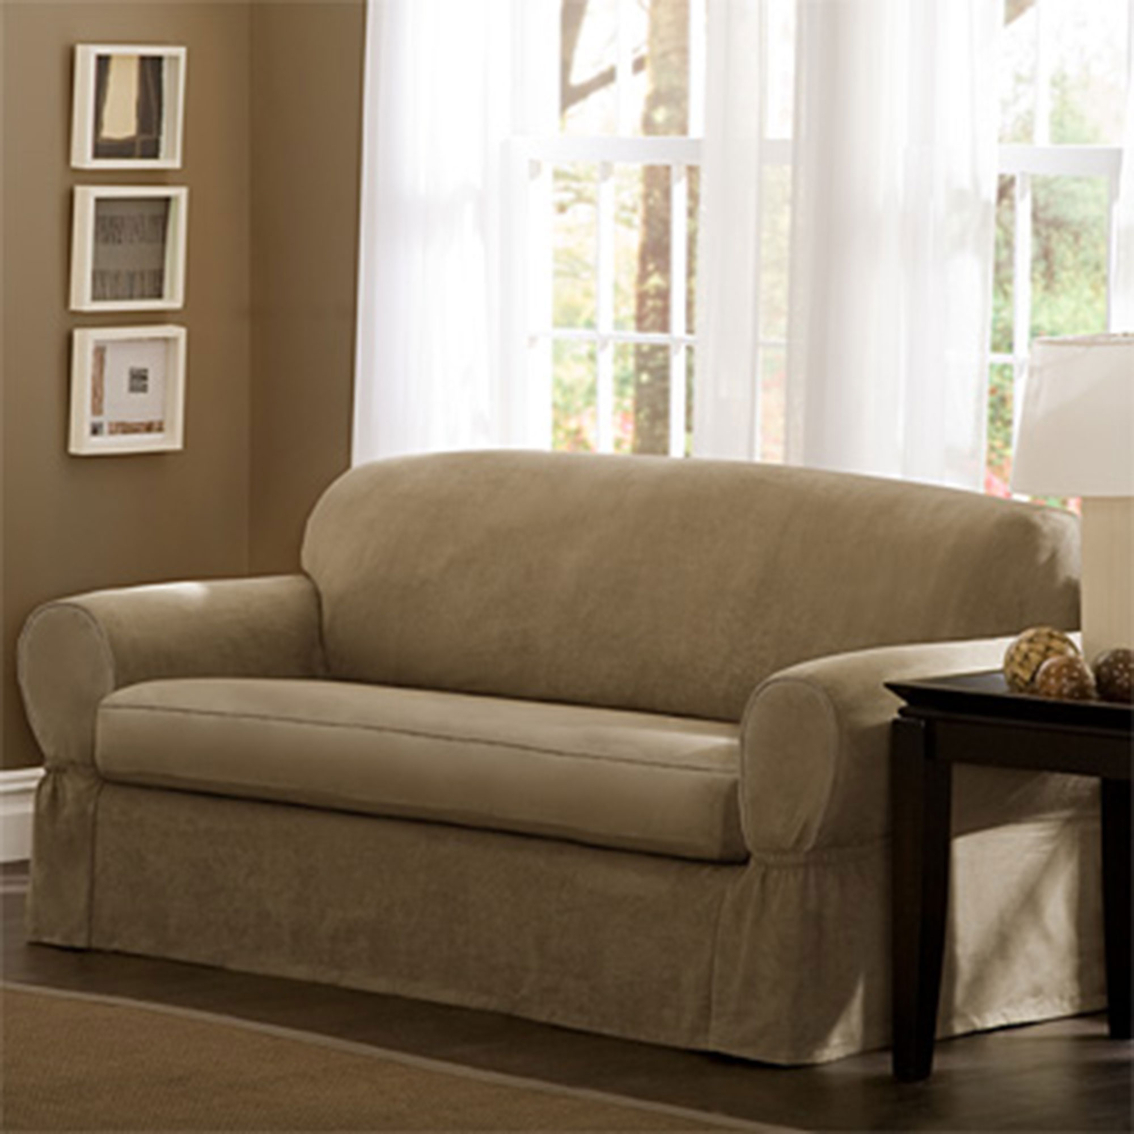 alex ii 89 sofa slipcover set full hd photos maytex piped faux suede 2 pc slipcovers